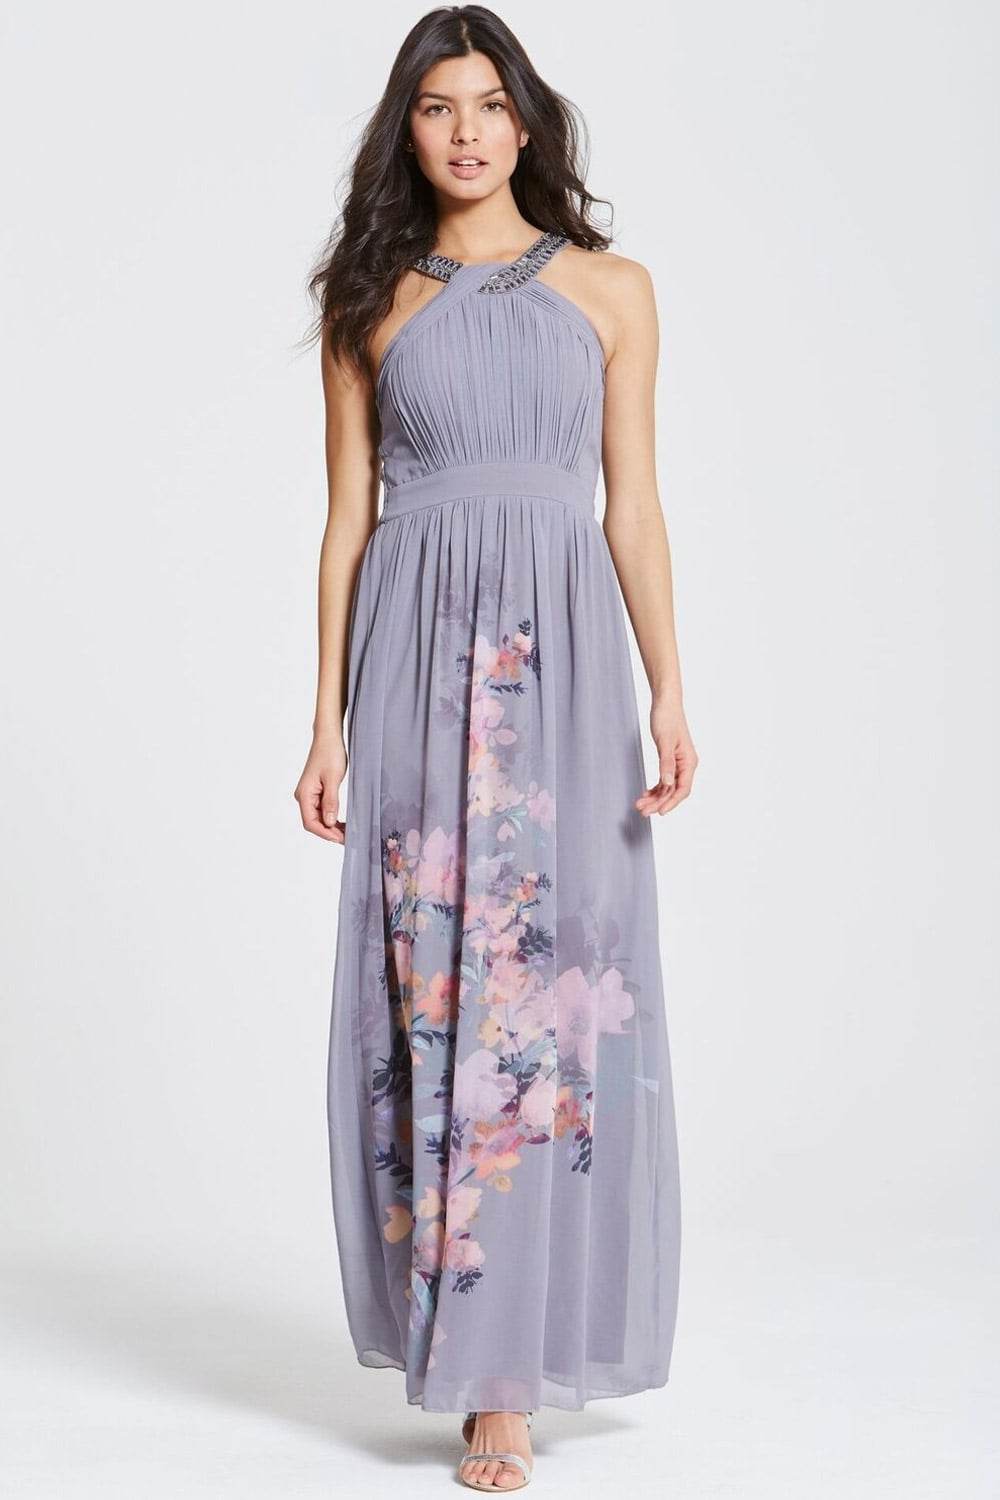 Grey Floral Print Chiffon Maxi Dress - from Little Mistress UK